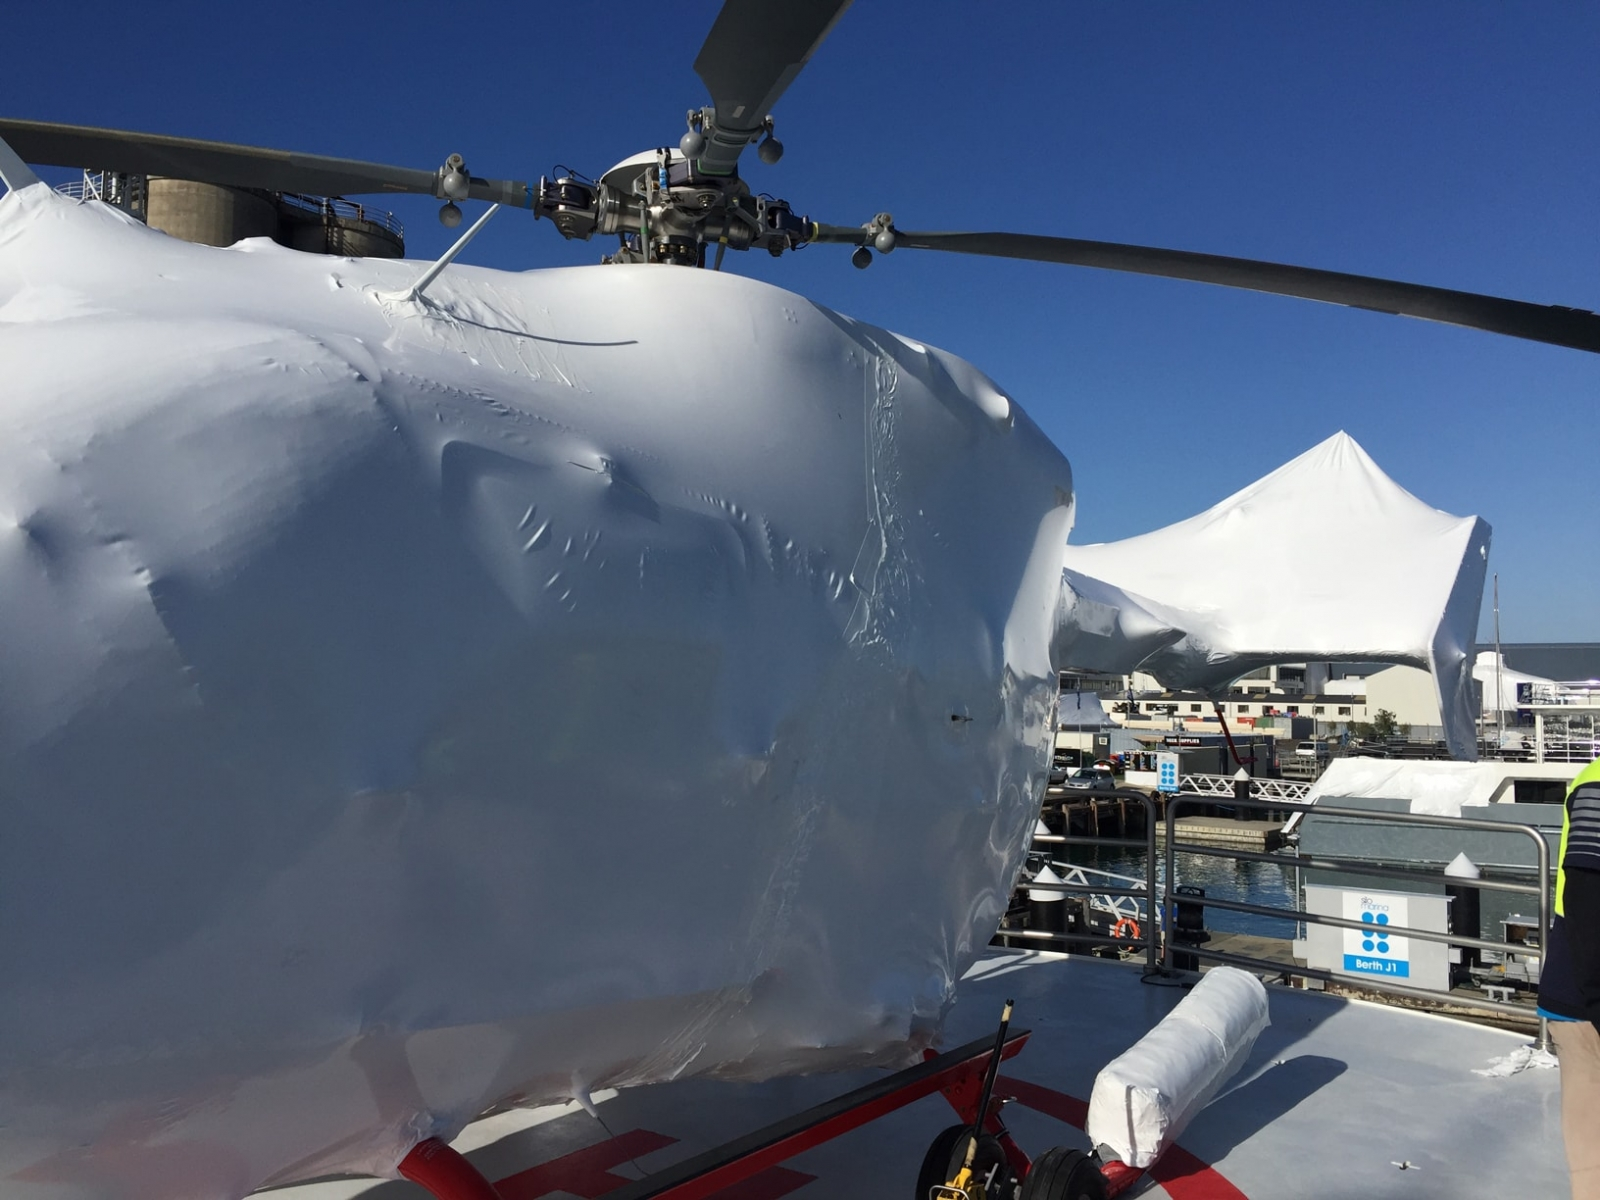 A1-Wrap-Shipping-Gallery-Image-6-Harbour-Heli-Auckland-2-min